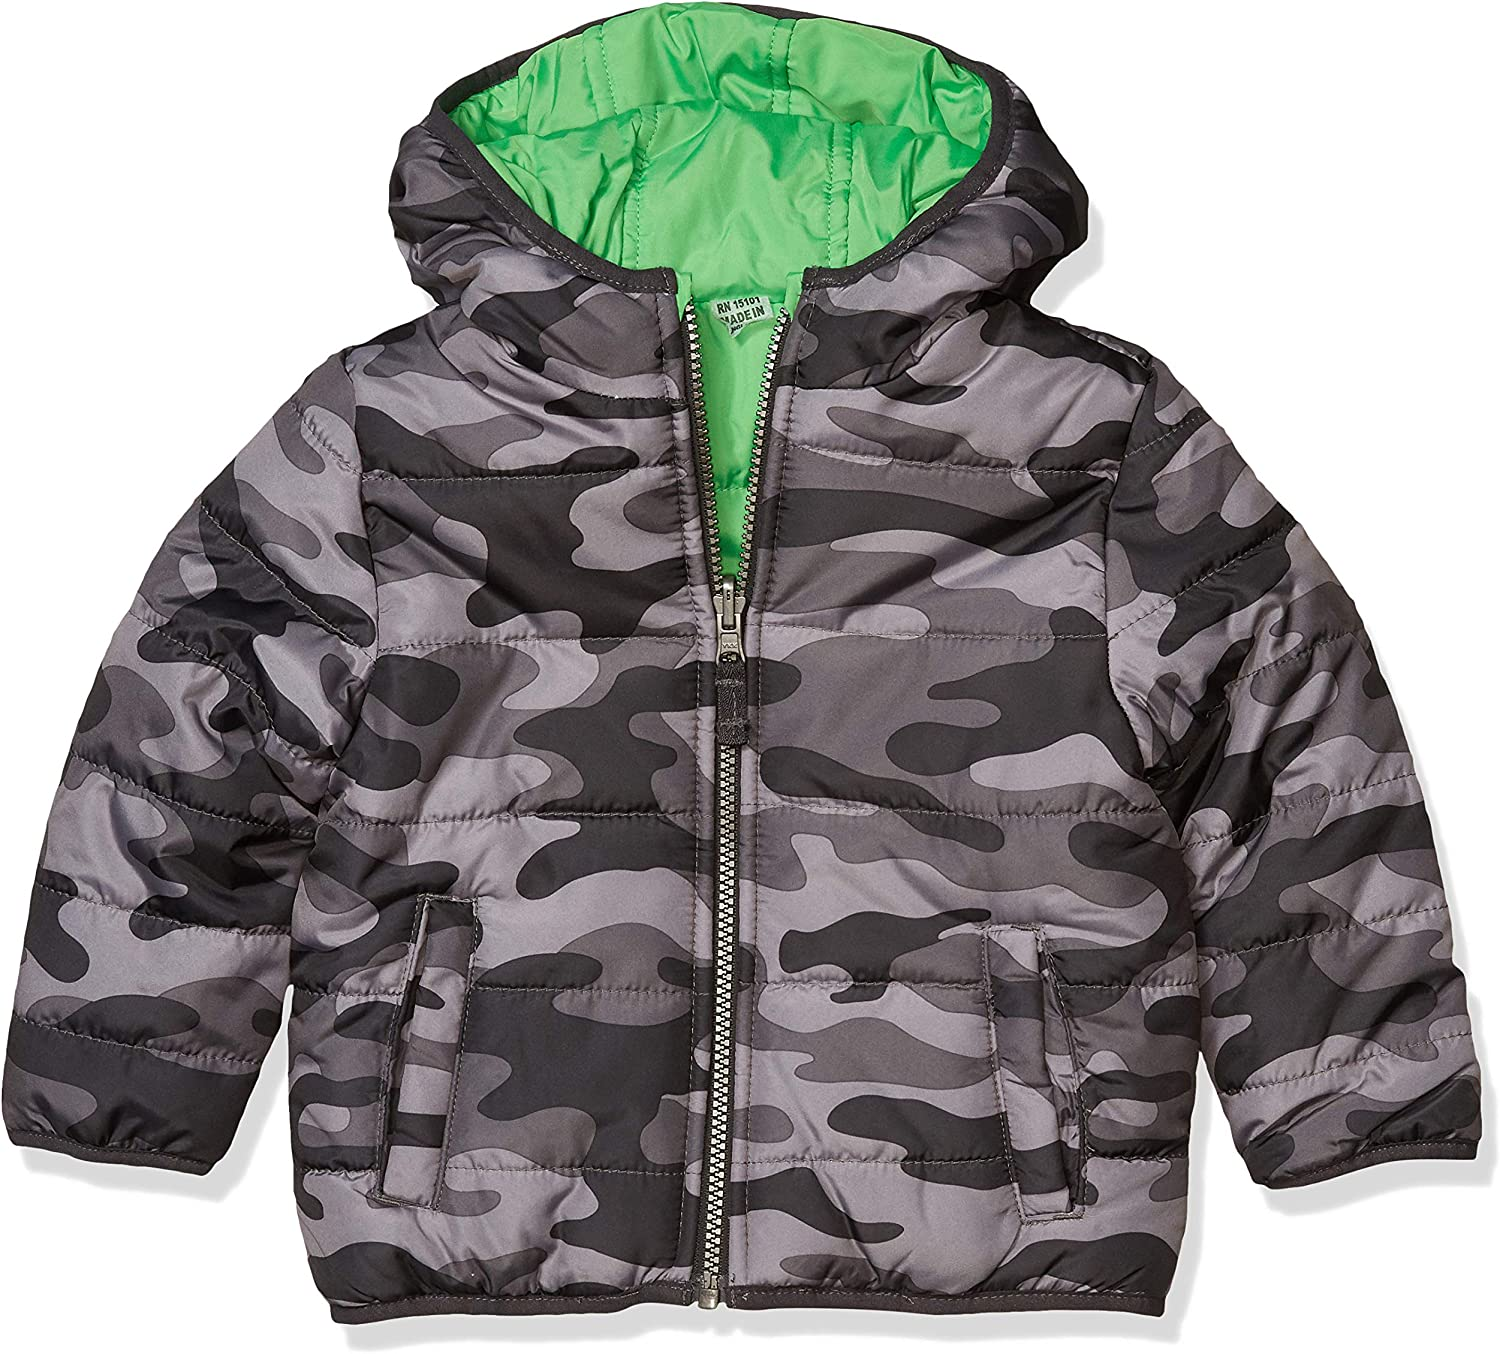 Year-end gift Carter's shopping Baby Boys Bubble Jacket Reversible